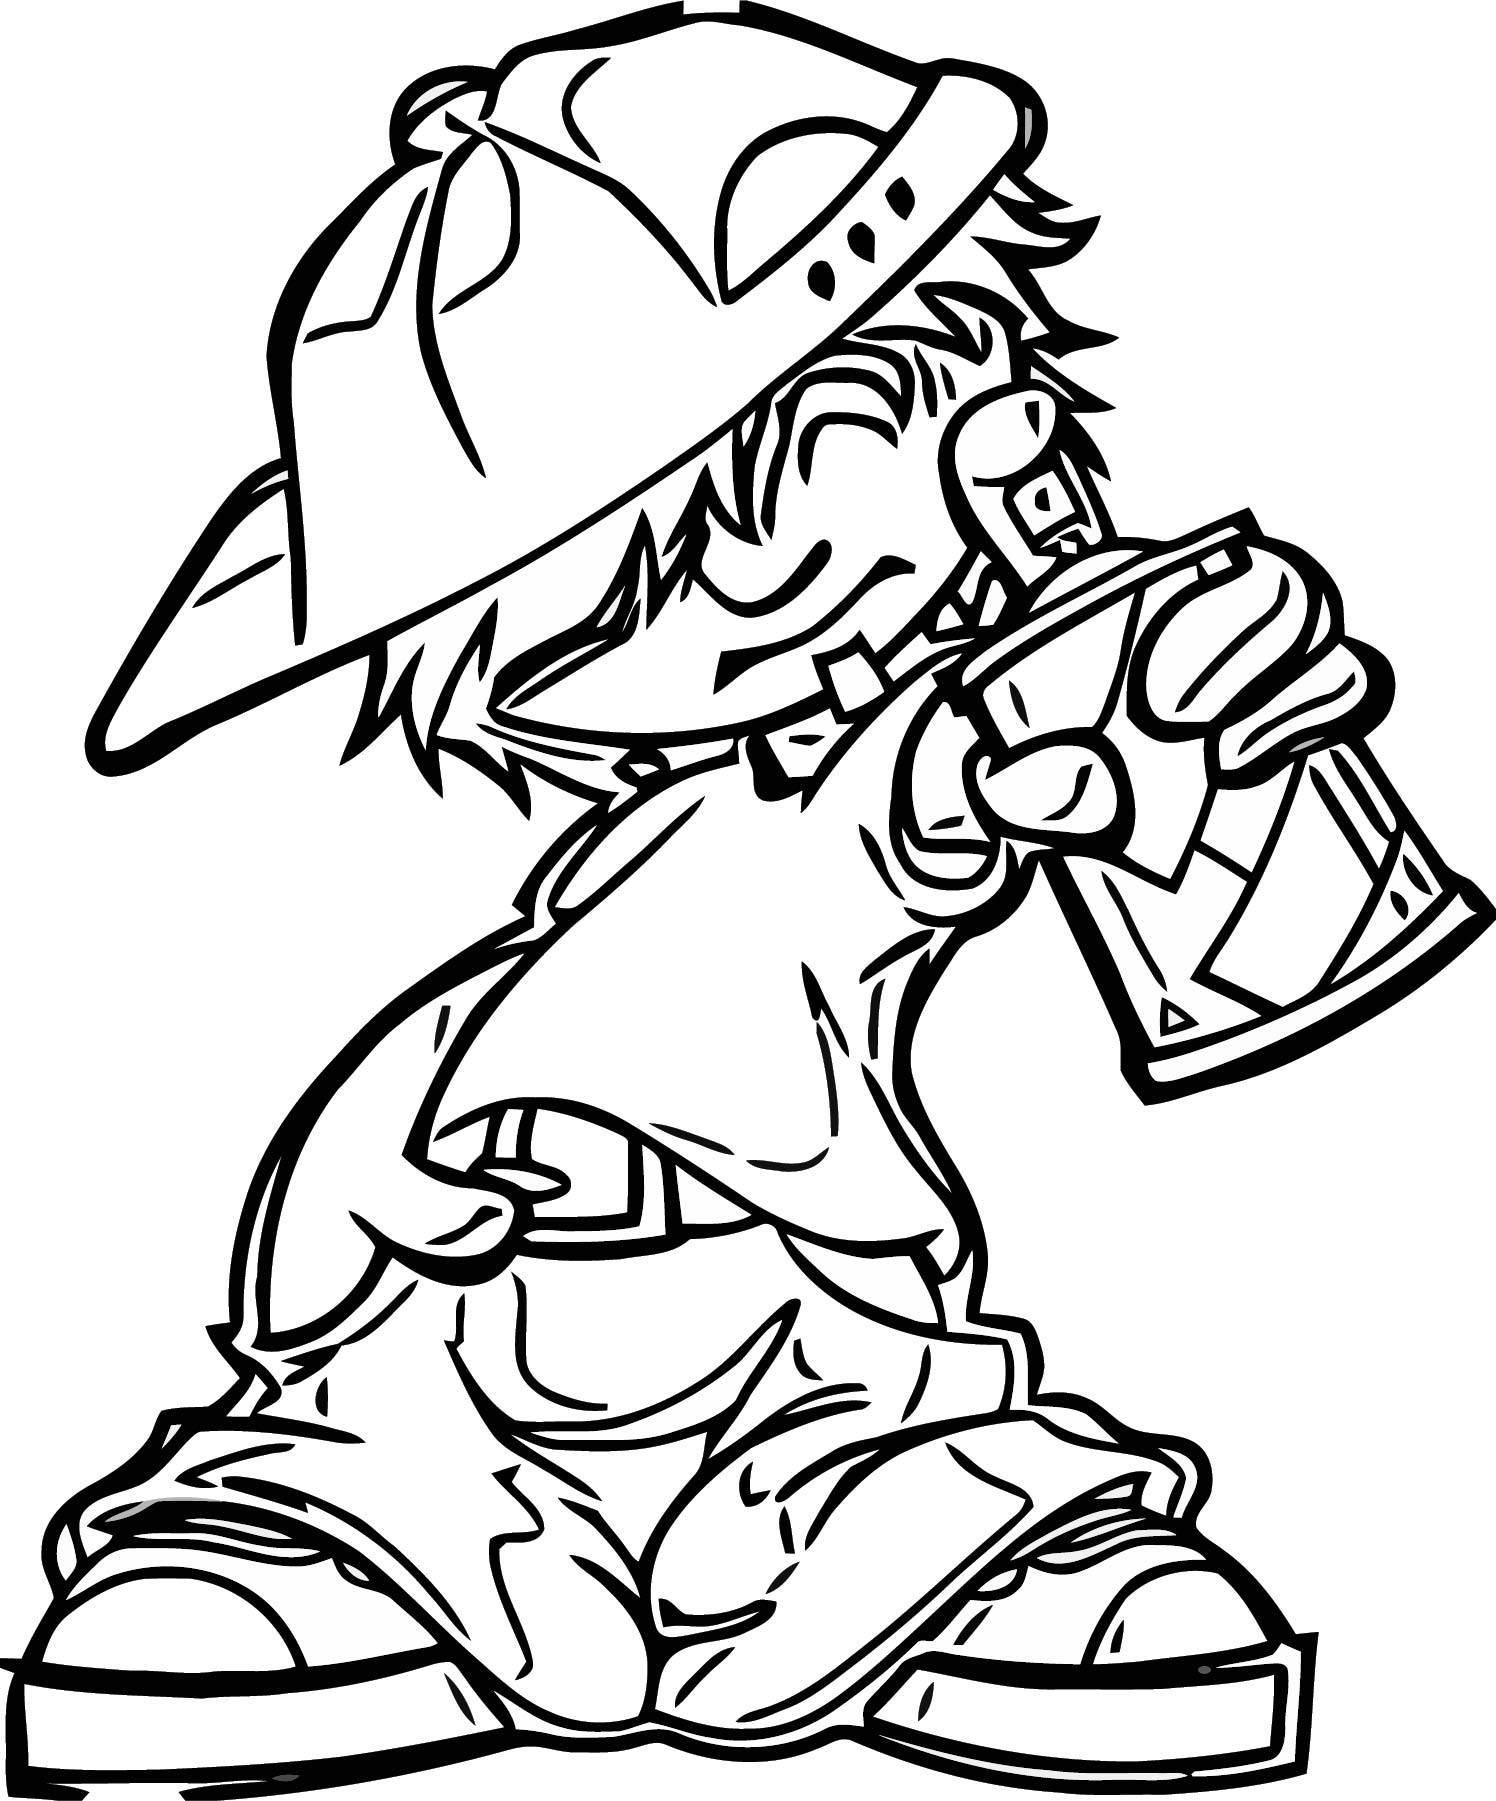 Character Designs Spray Boy Coloring Page